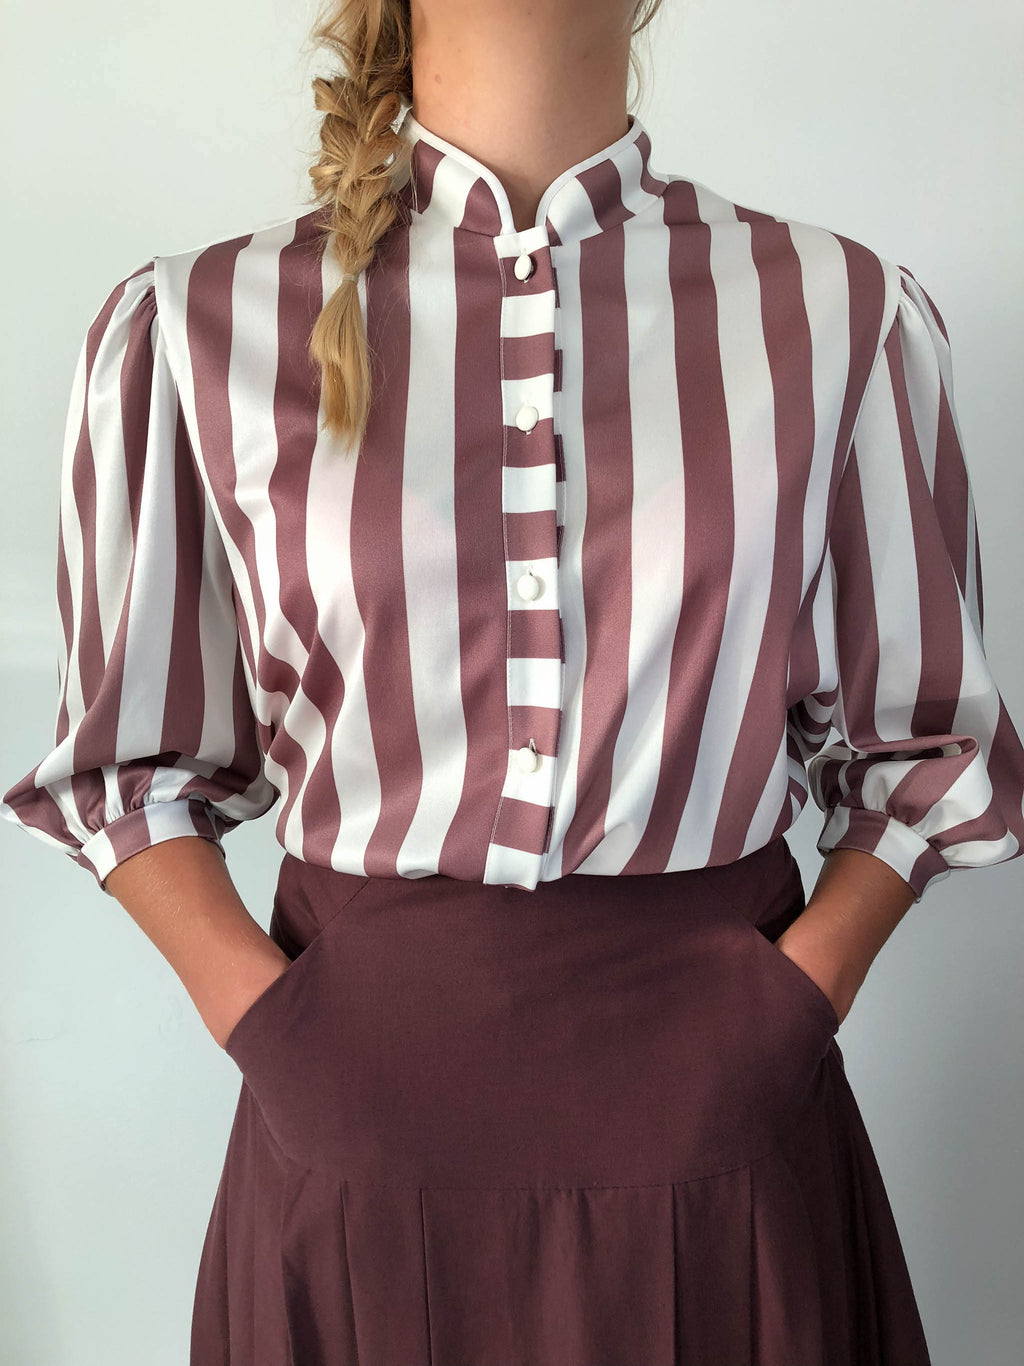 vintage shirt with white and brown stripes made in Finland